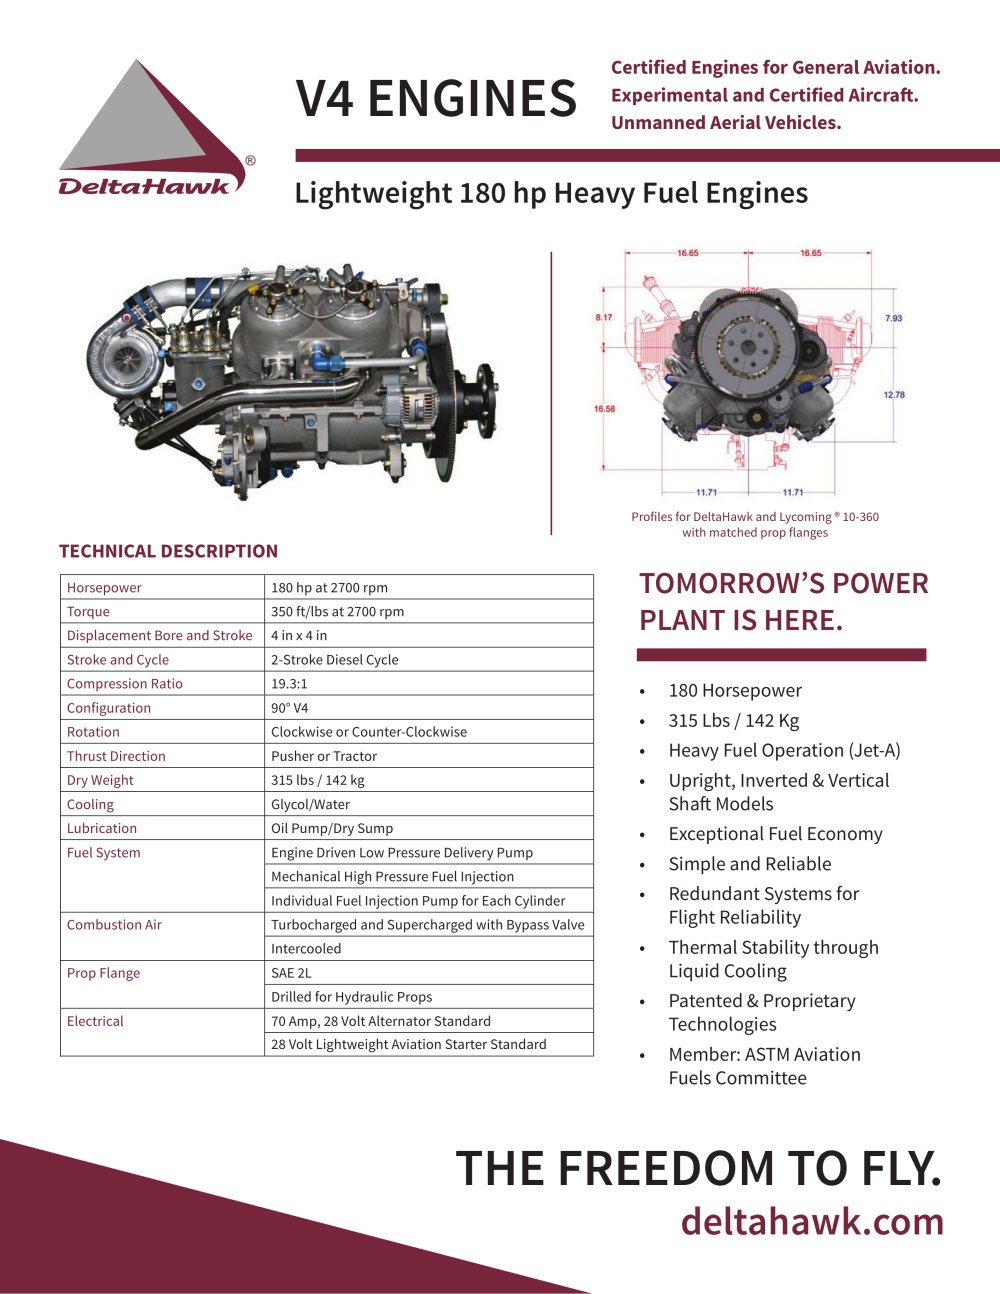 V4 Engines Lightweight 180 Hp Heavy Fuel Deltahawk General Engine Cooling Diagram 1 2 Pages